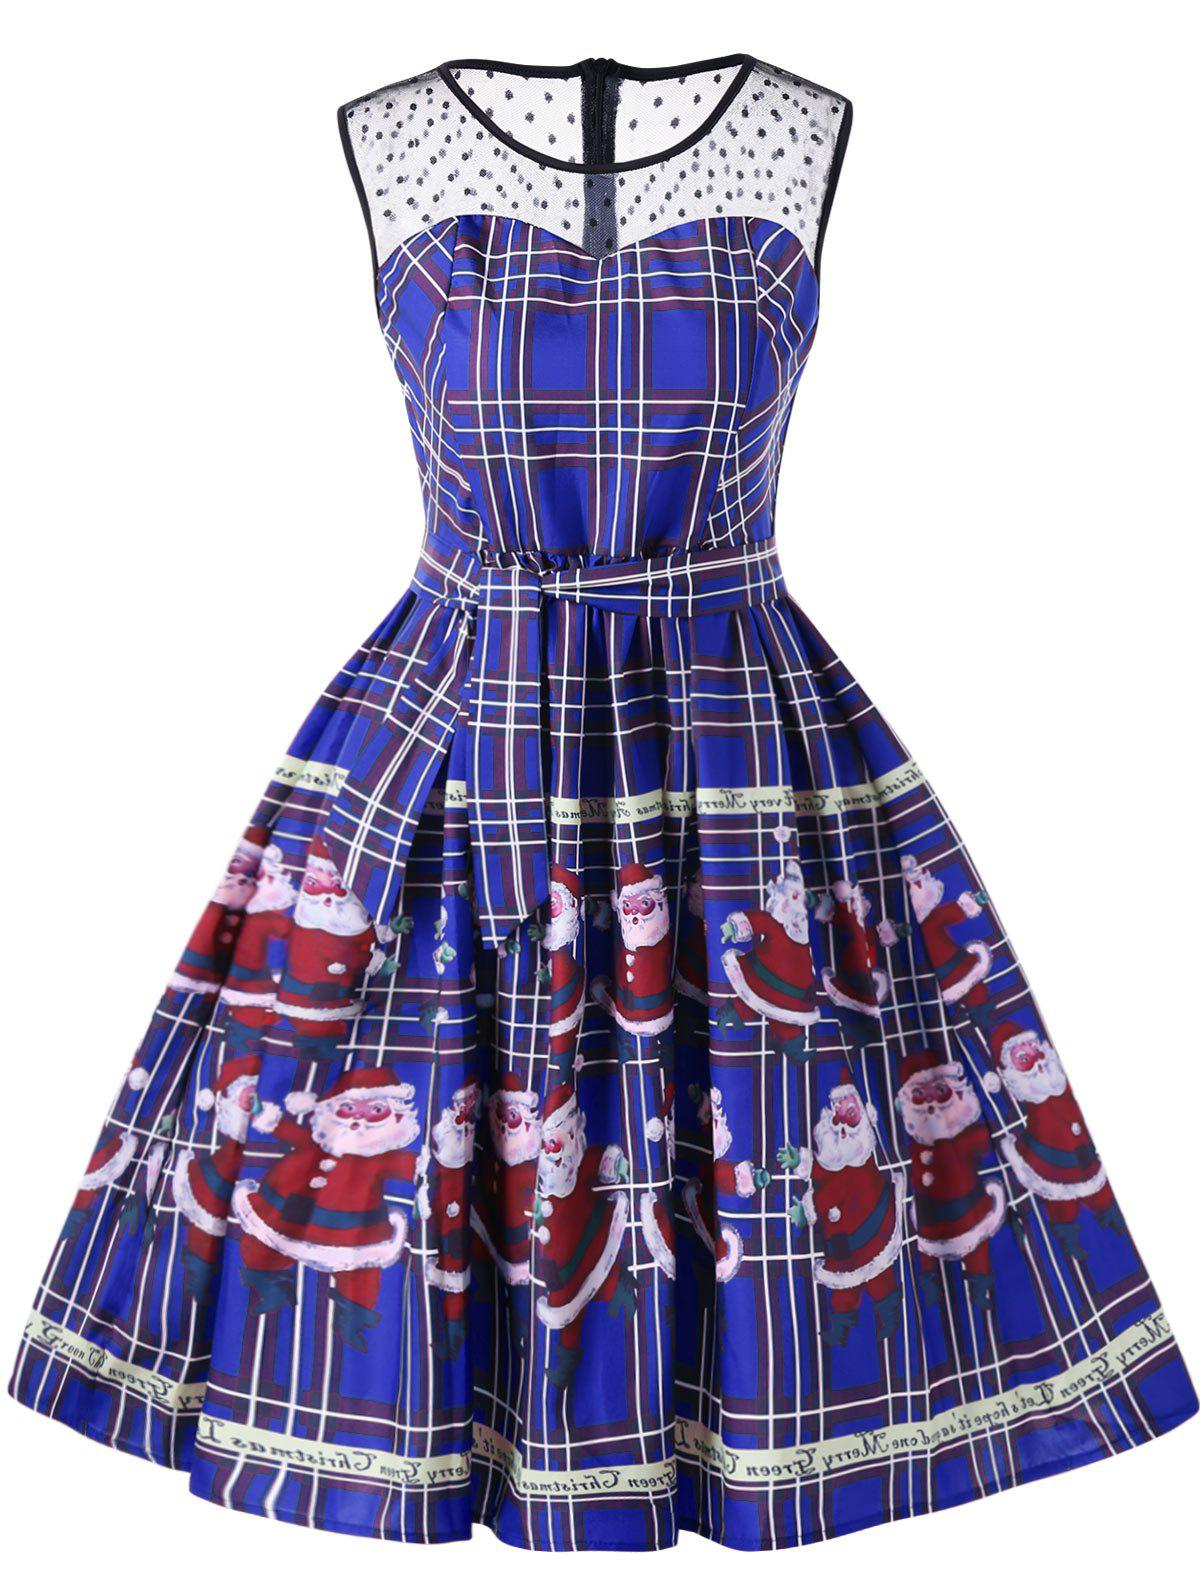 Christmas Santa Claus Plaid Sheer Swing DressWOMEN<br><br>Size: 2XL; Color: BLUE; Style: Vintage; Material: Polyester; Silhouette: A-Line; Dresses Length: Knee-Length; Neckline: Round Collar; Sleeve Length: Sleeveless; Pattern Type: Character,Plaid; With Belt: No; Season: Fall,Spring,Summer; Weight: 0.2300kg; Package Contents: 1 x Dress;